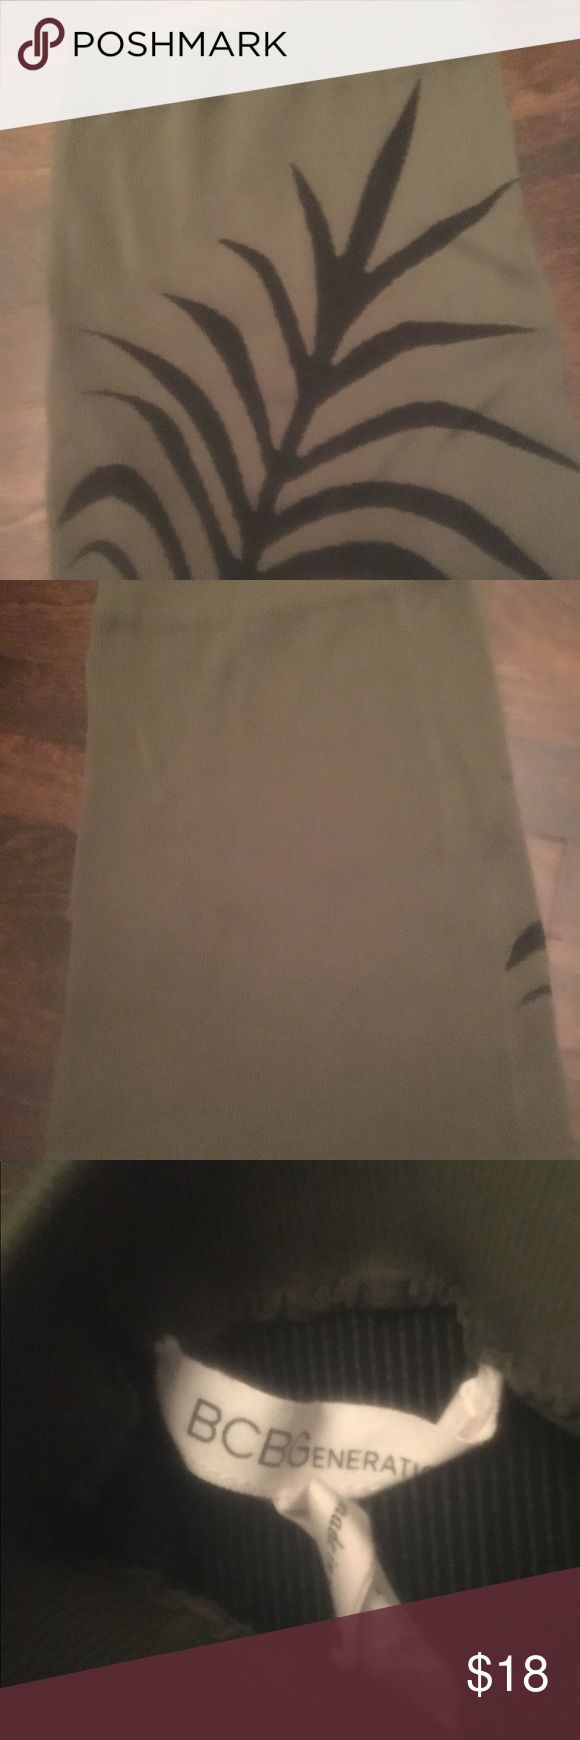 BCBGeneration olive color nylon mini skirt xs/s BCBGeneration mini skirt olive w/ leaf motif  xs/s can be worn all year round with flats and a rant or a tshirt motorcycle jacket and thigh boots ... ready set to go out BCBGeneration Skirts Mini